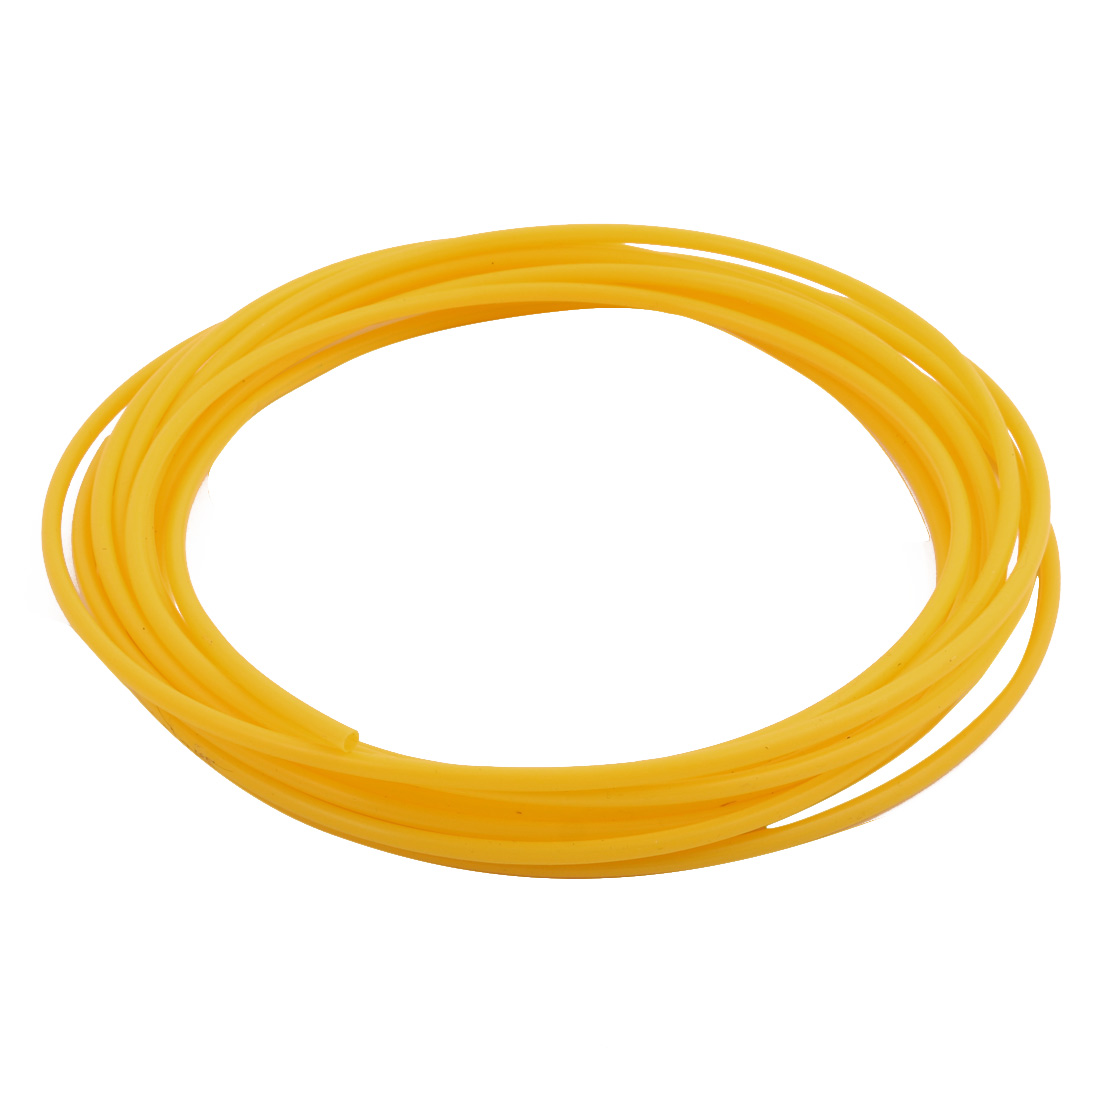 3mmx3.4mm PTFE Resistant High Temperature Yellow Tubing 5Meters 16.4Ft